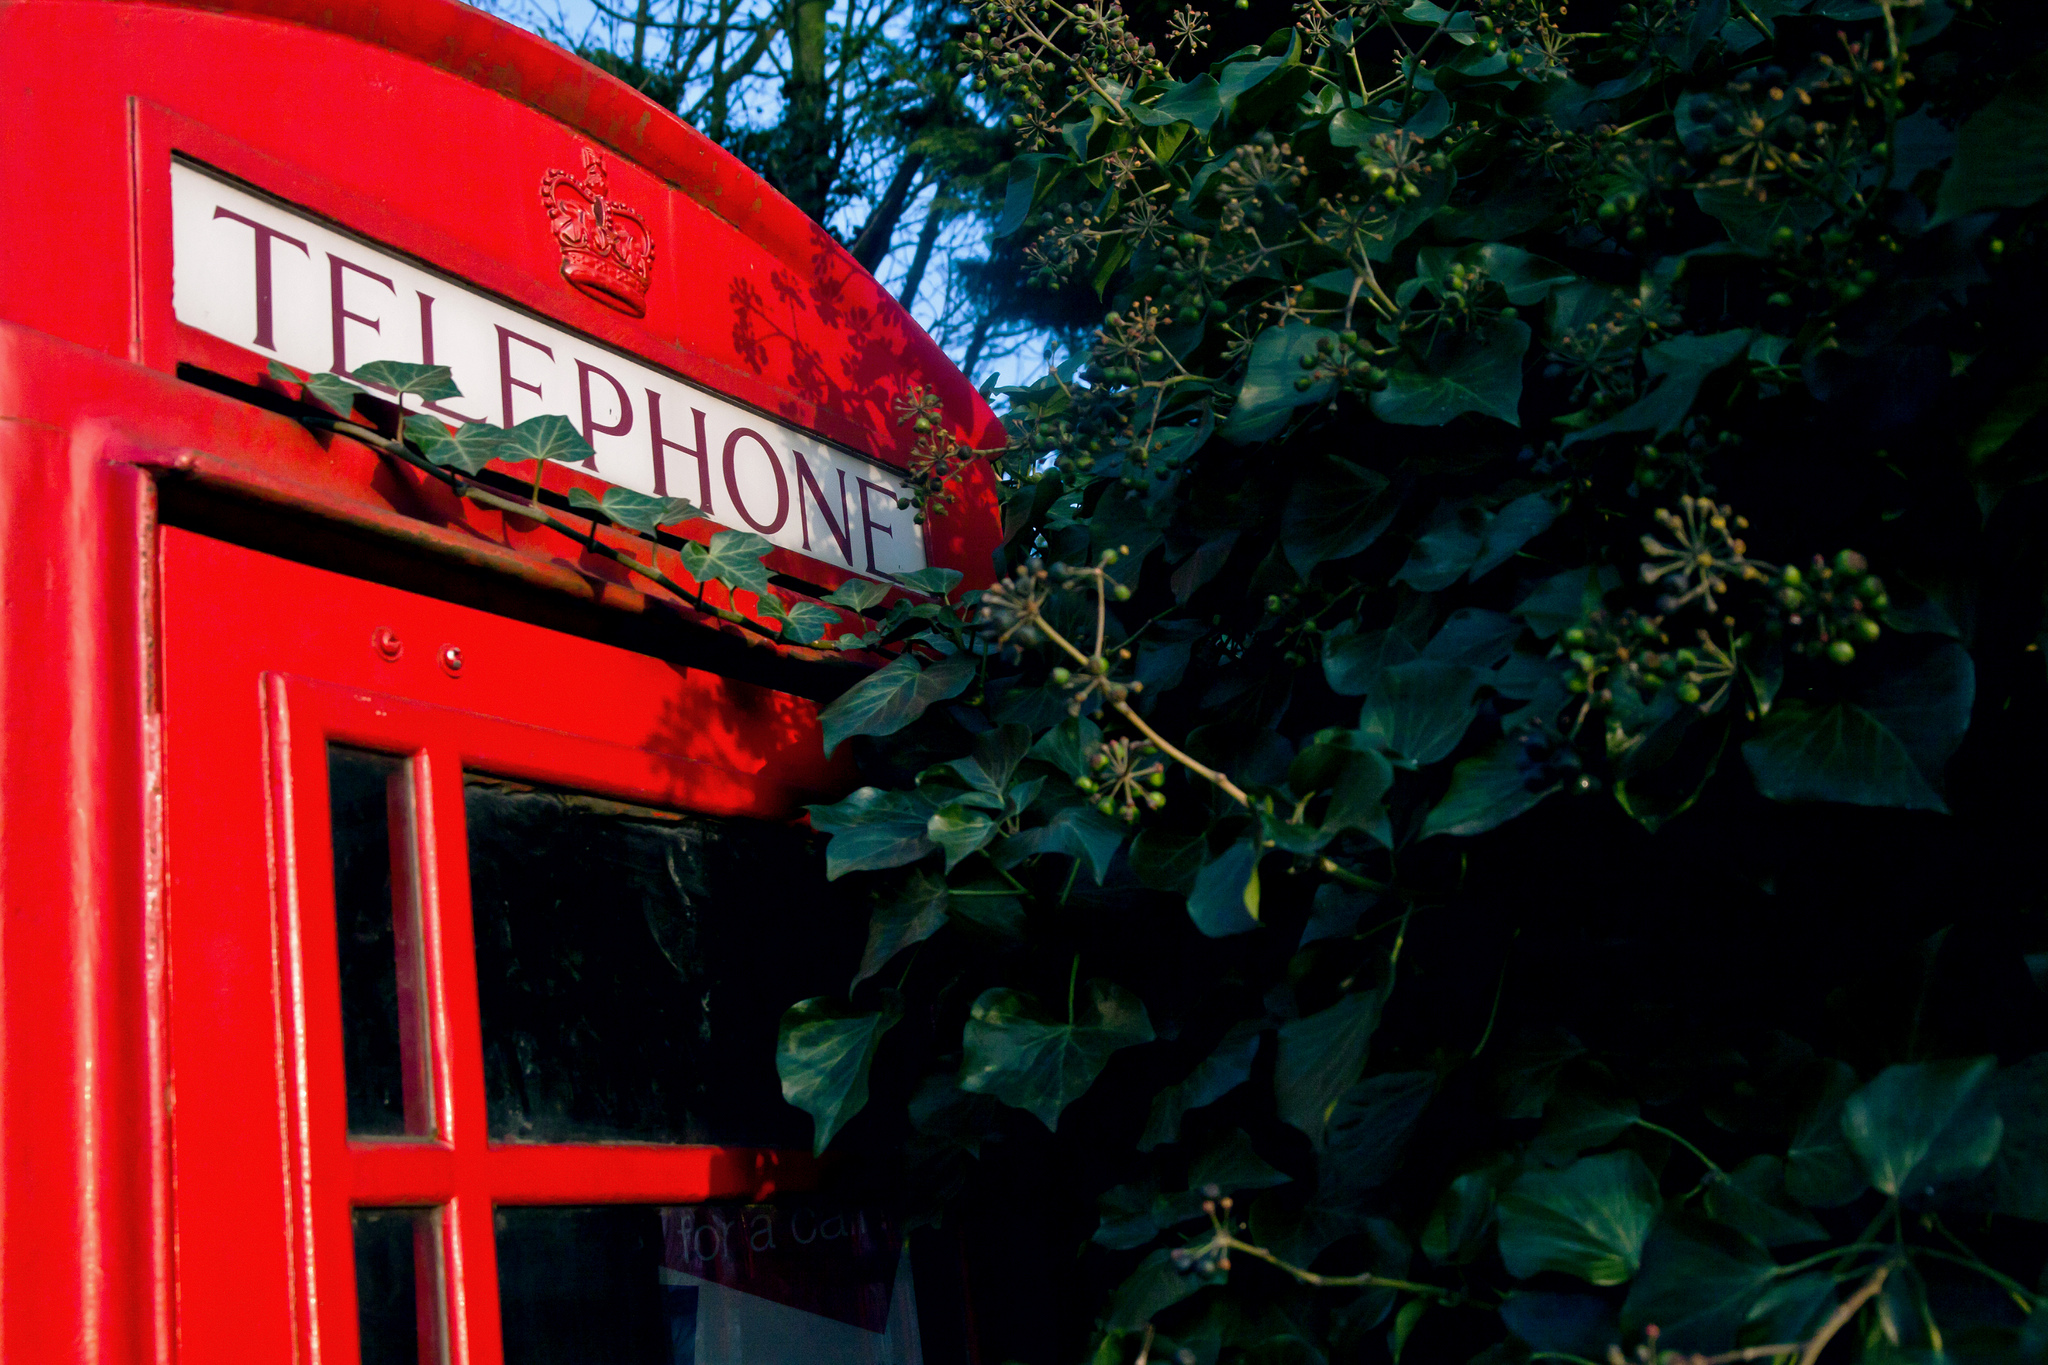 London red phone booth - Pawel Pacholec